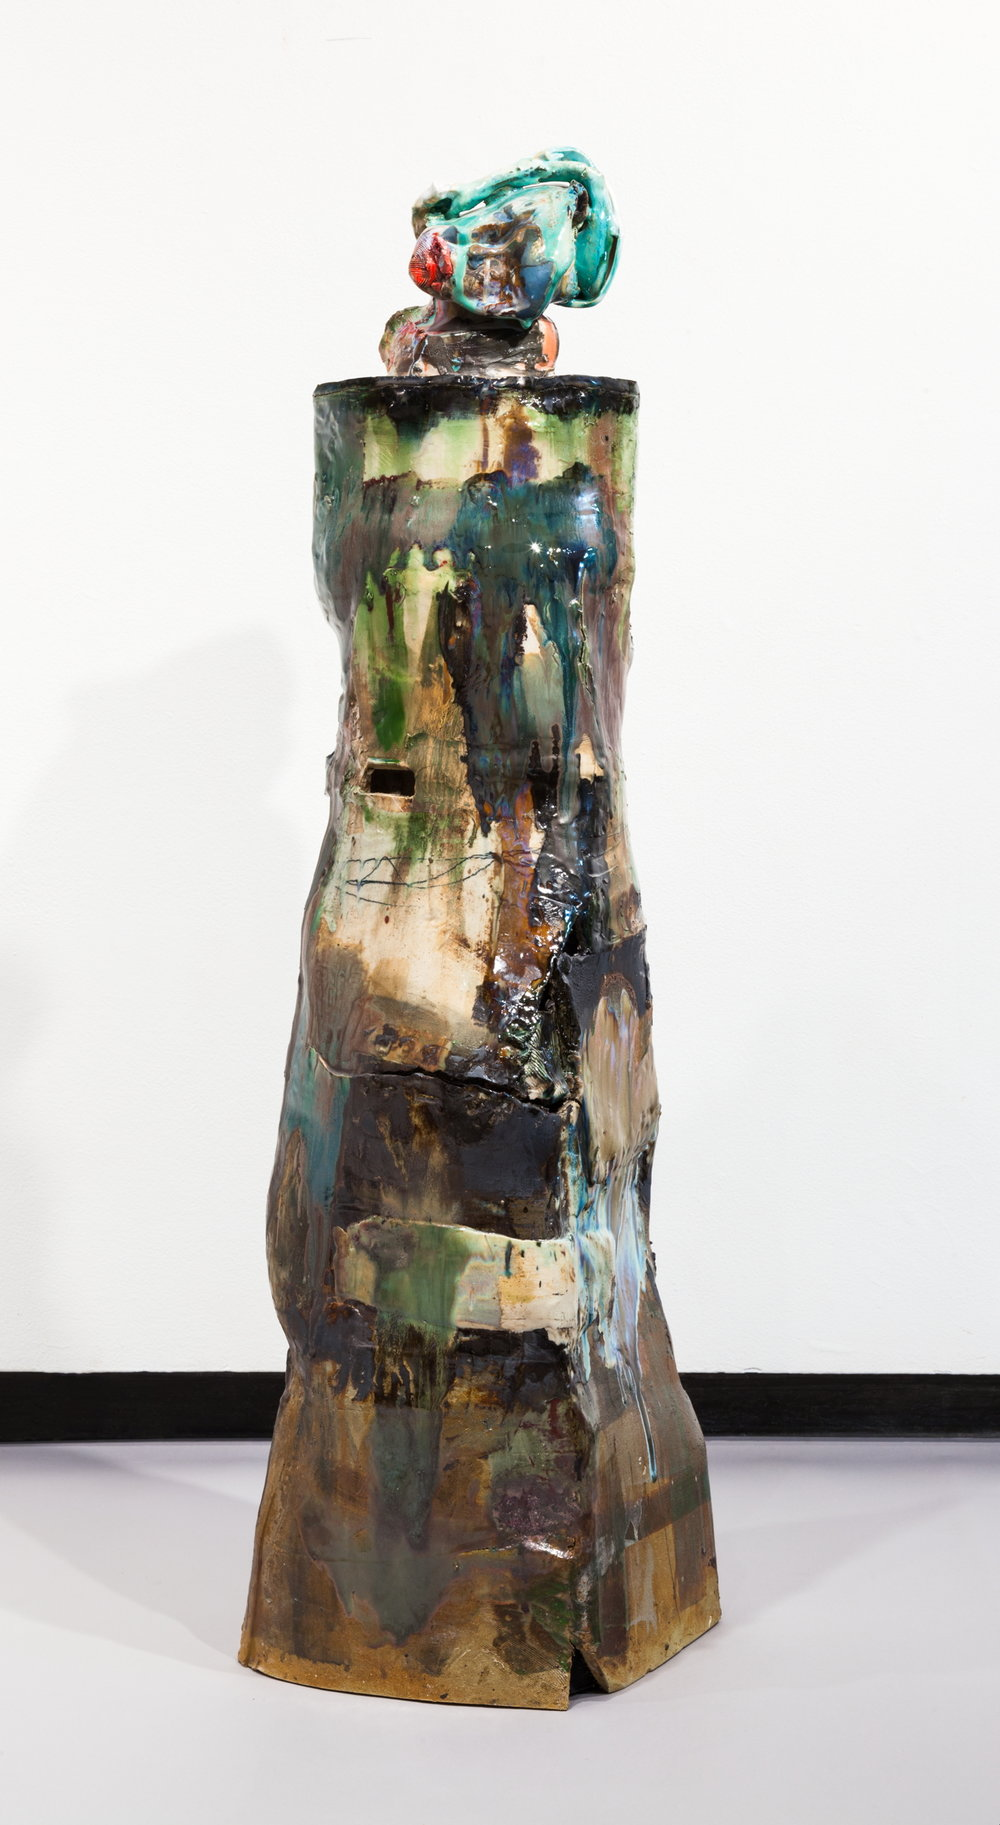 Jennie Jieun Lee,  Untitled Green , 2017, glazed stoneware, 43.25 x 12 x 10 in.